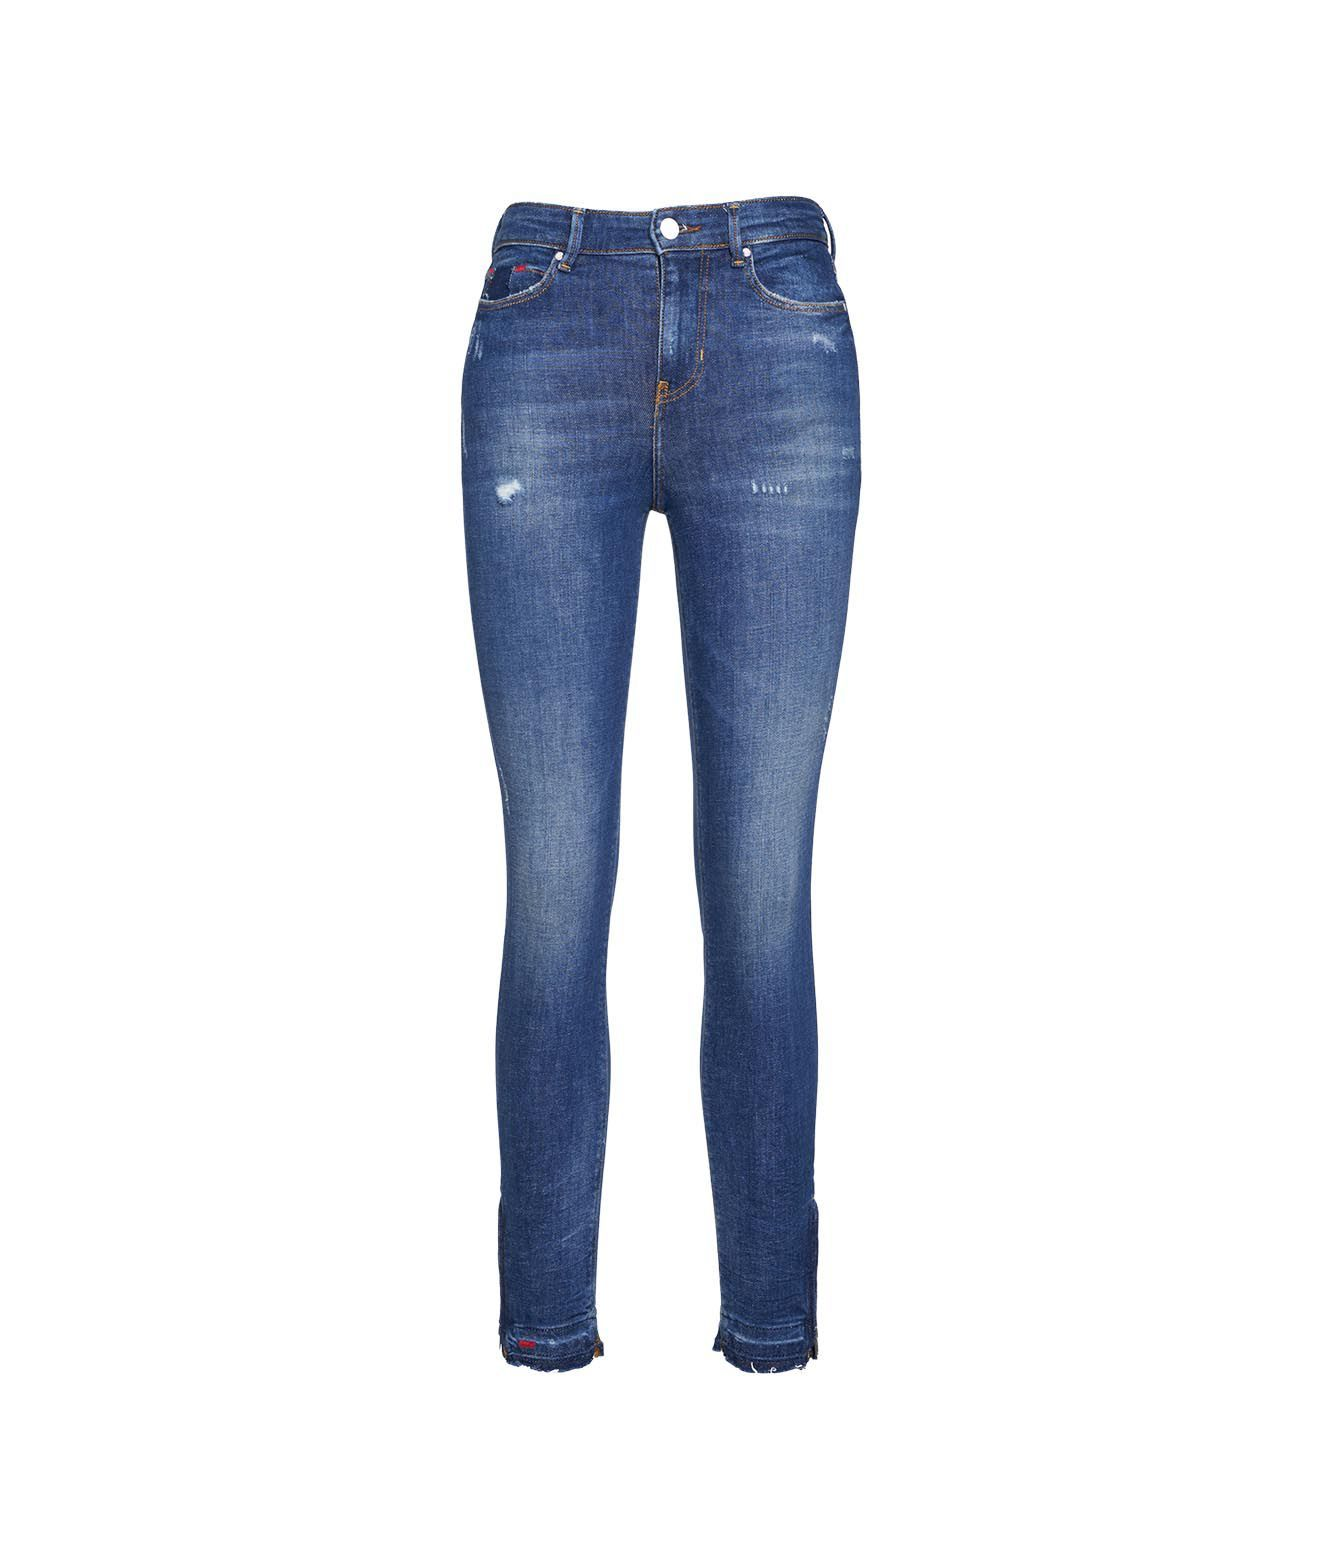 Guess Linings GUESS WOMEN'S W1RA93D46A411GLRS BLUE OTHER MATERIALS JEANS